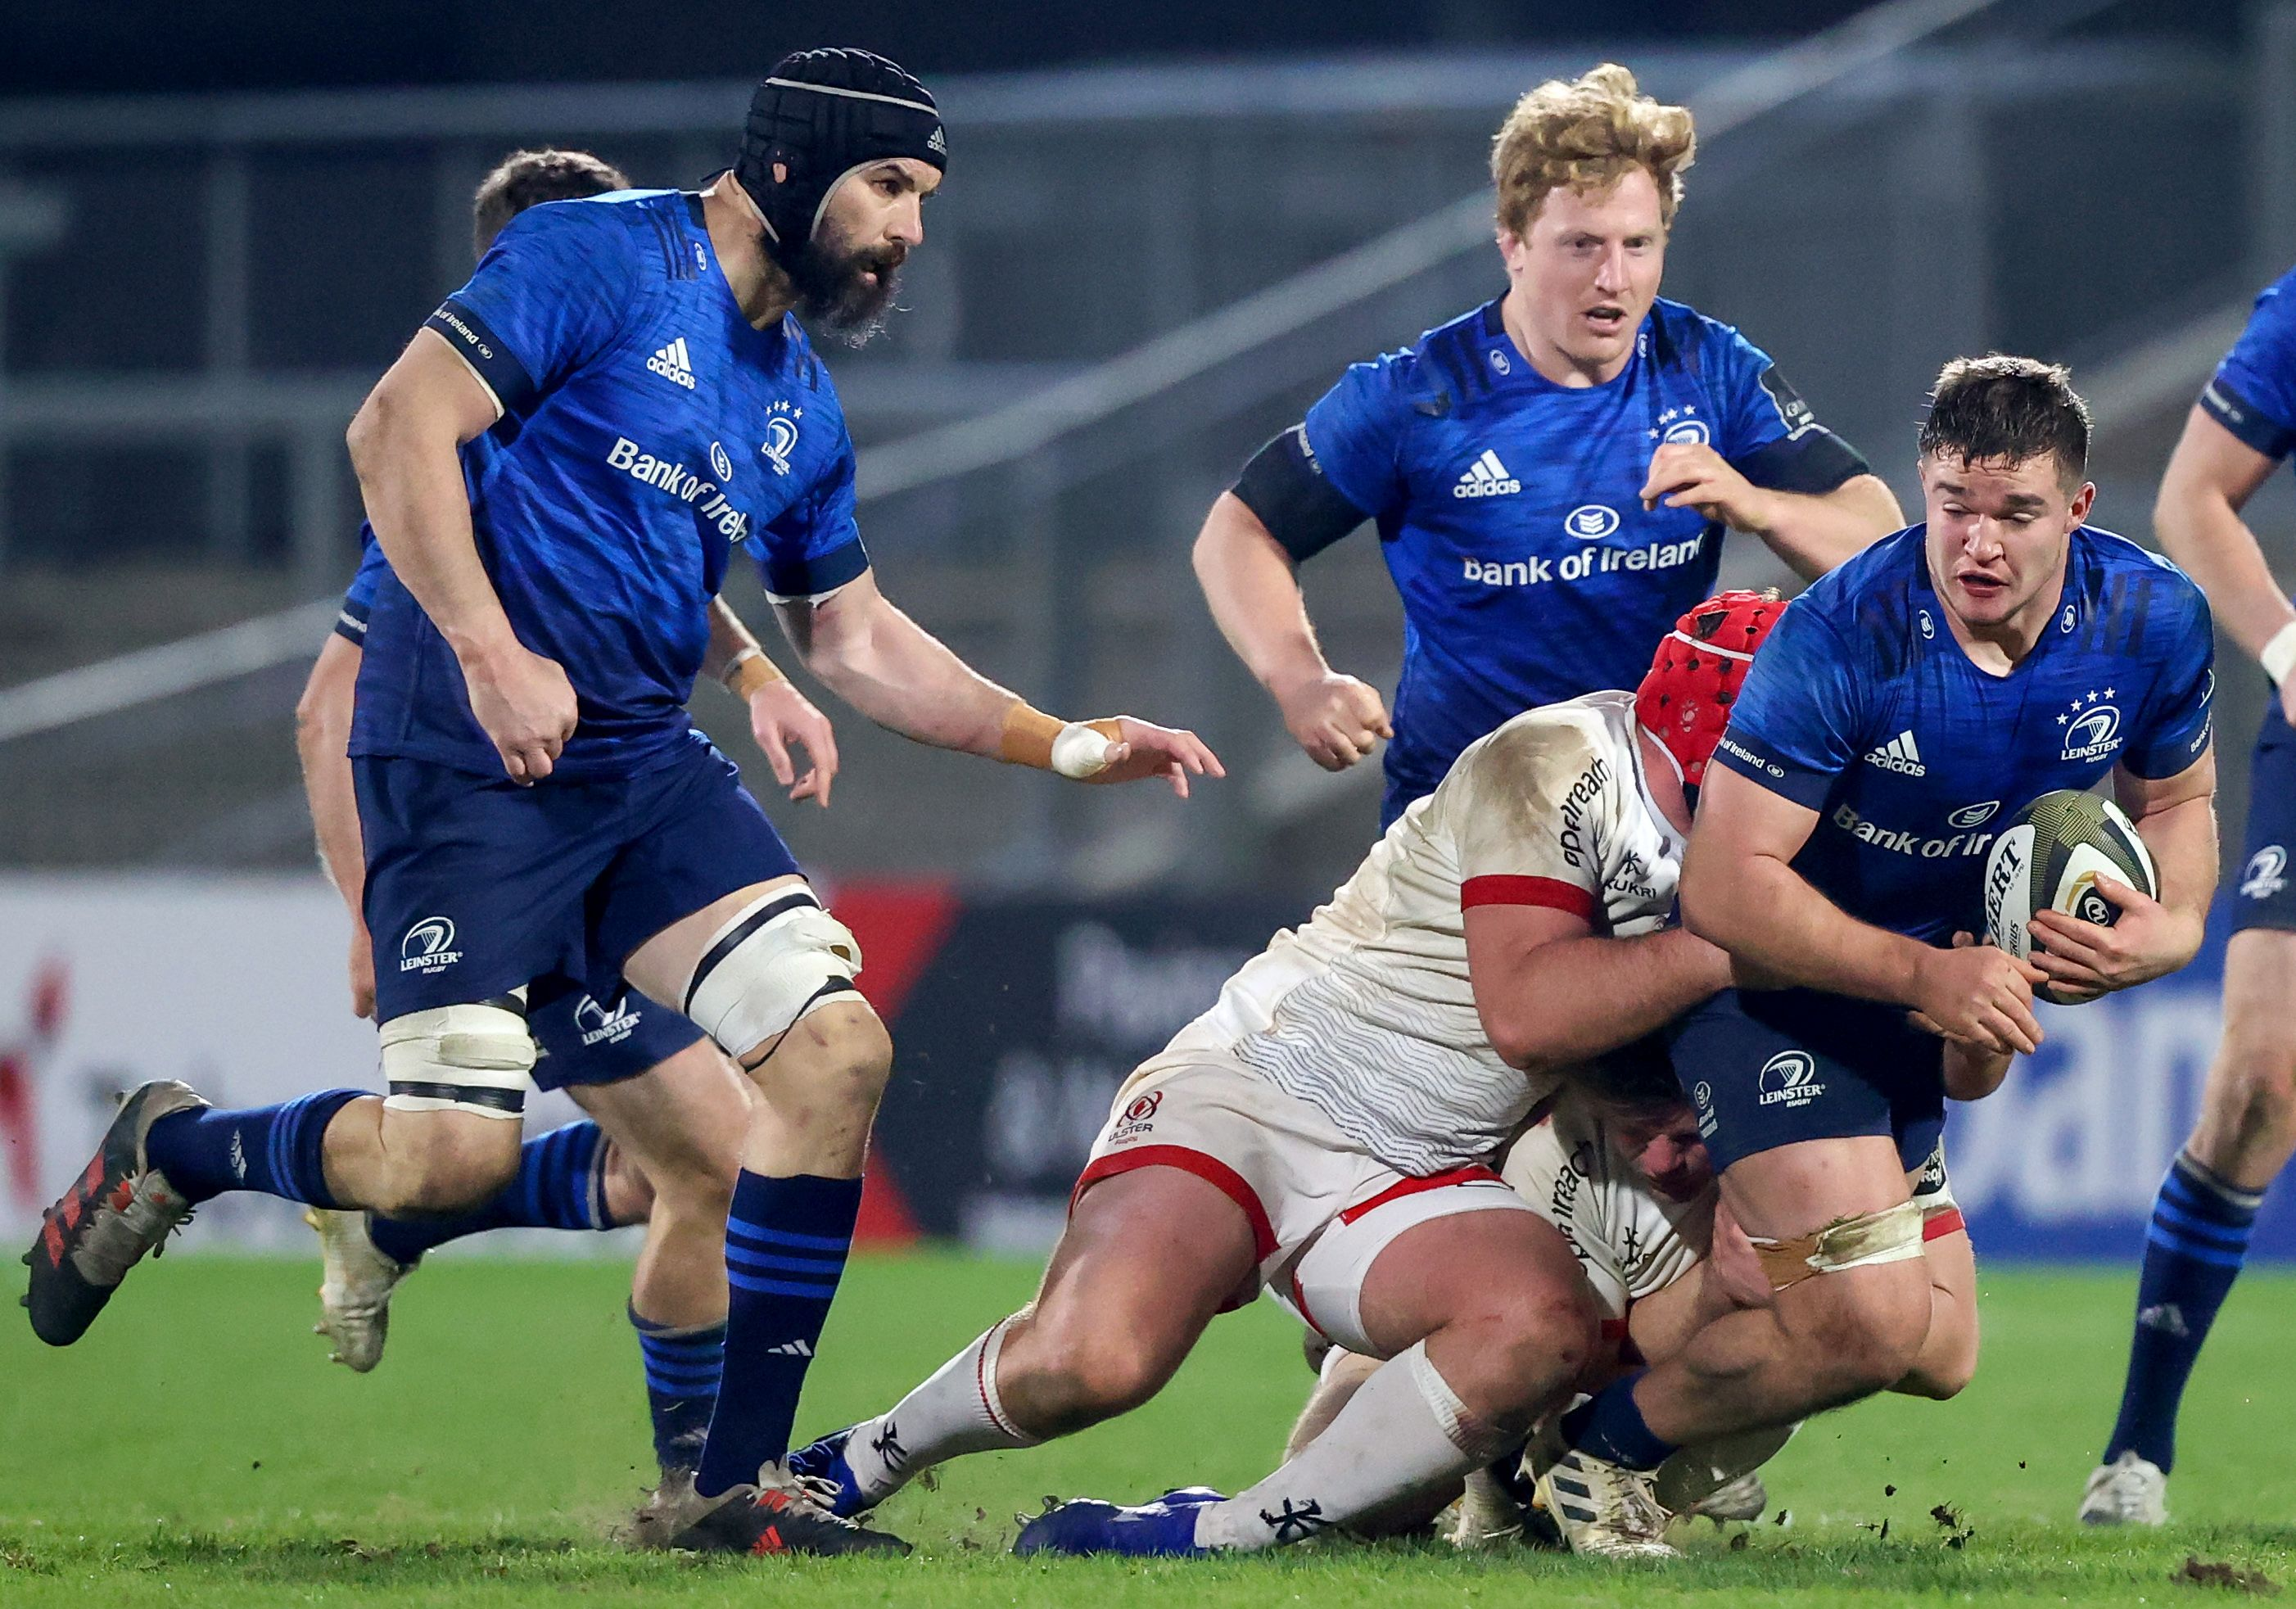 Despite the disappointment of last week\'s loss, Ulster intend to keep building towards next month\'s European Challenge Cup tie against Harlequins